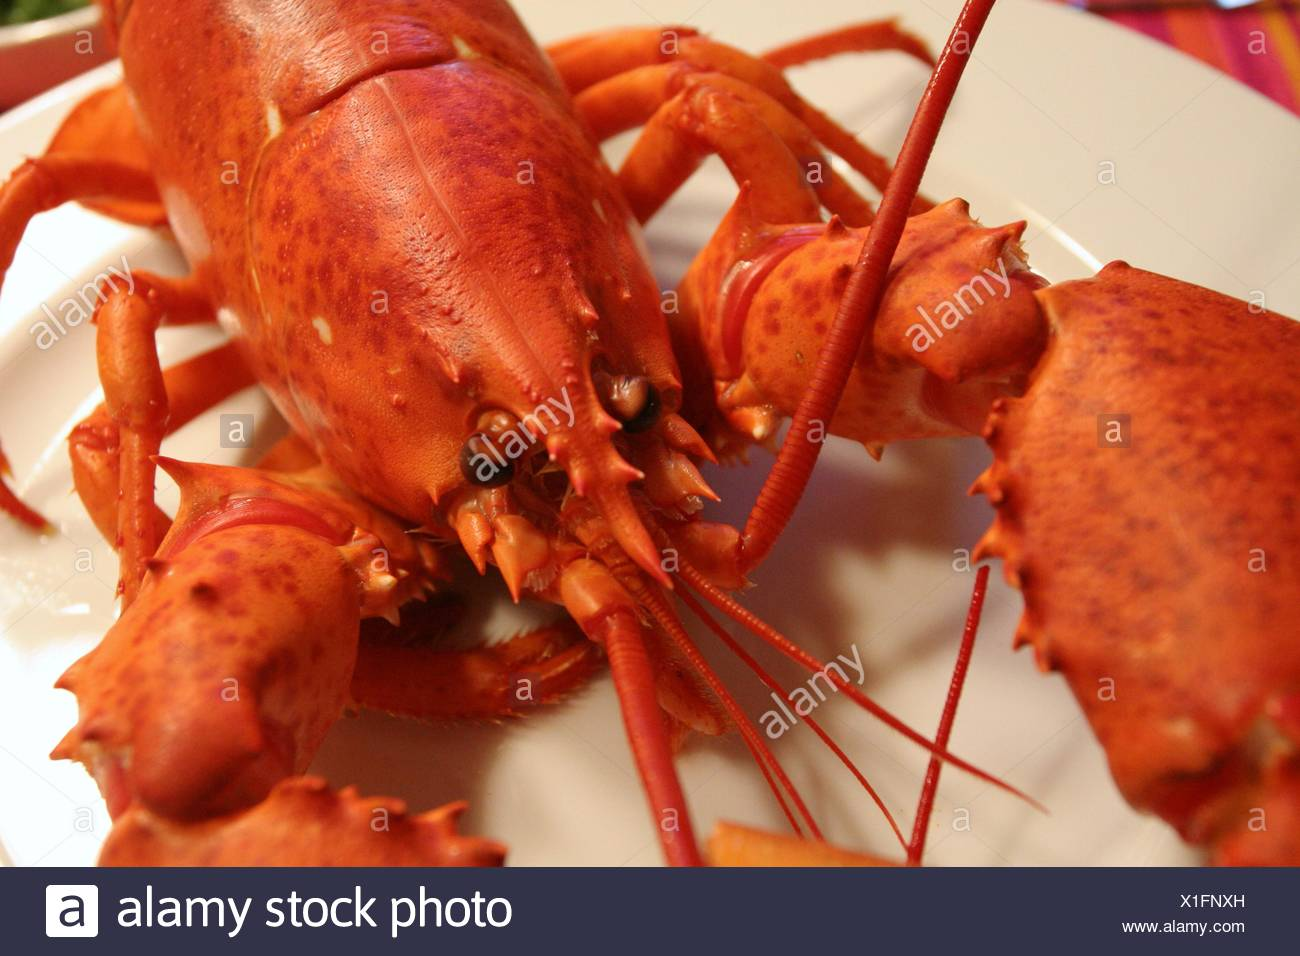 evening tendency plate lobster - Stock Image